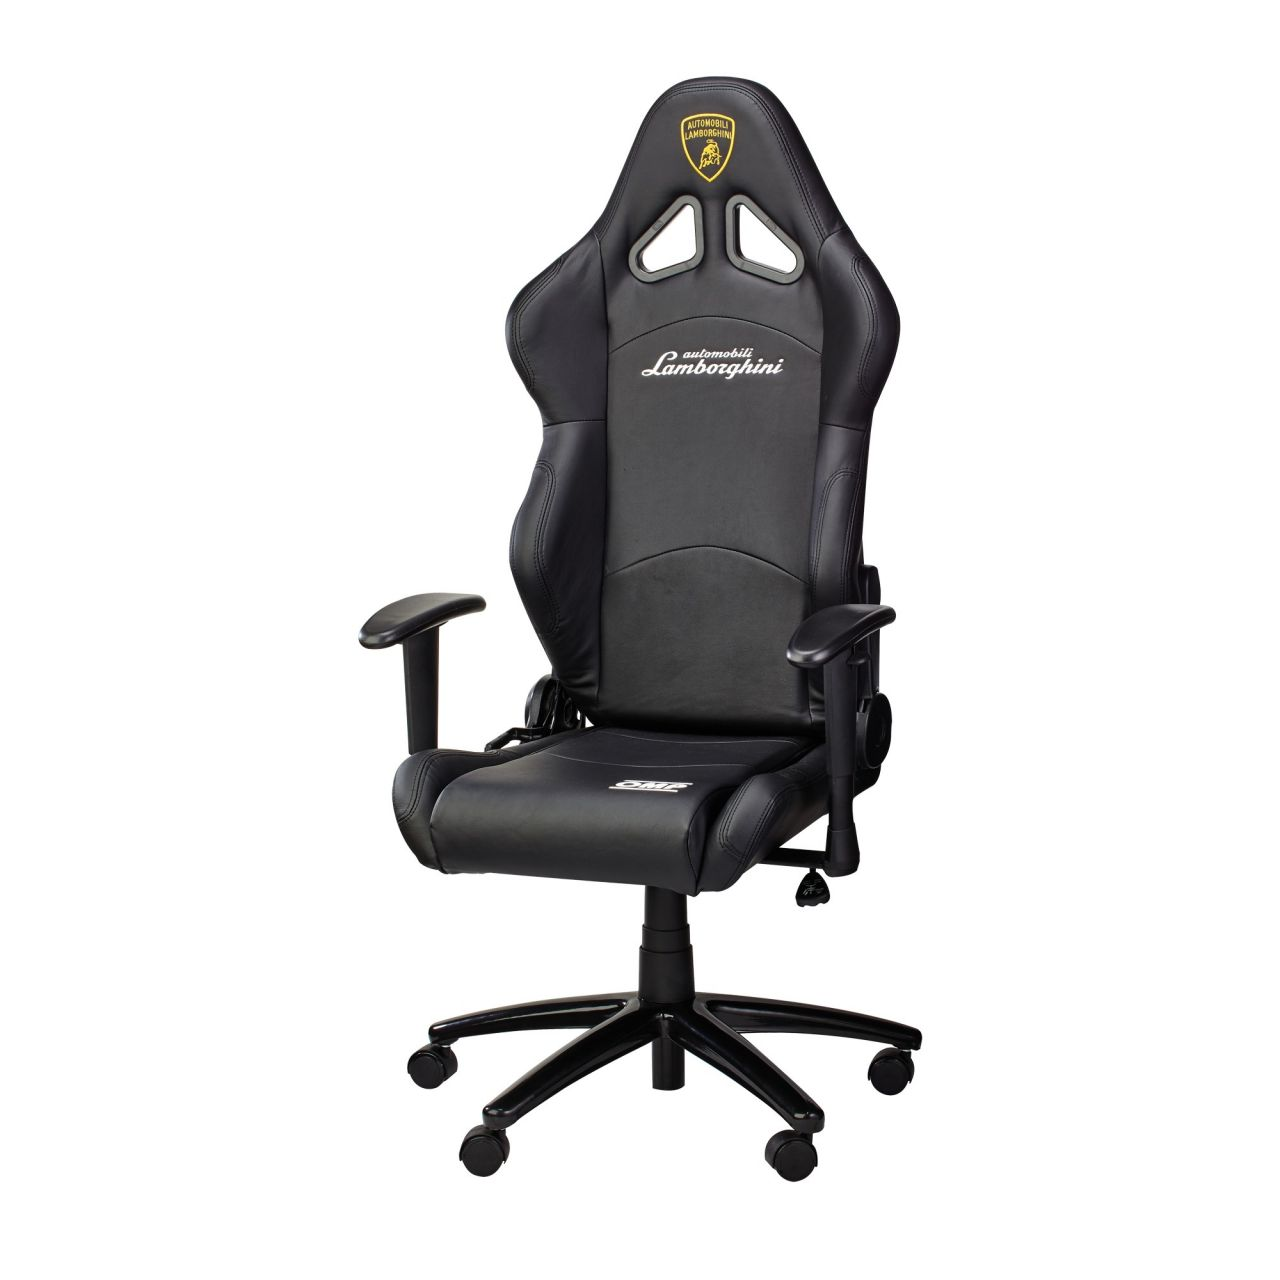 omp racing seat office chair gsm sport seats. Black Bedroom Furniture Sets. Home Design Ideas